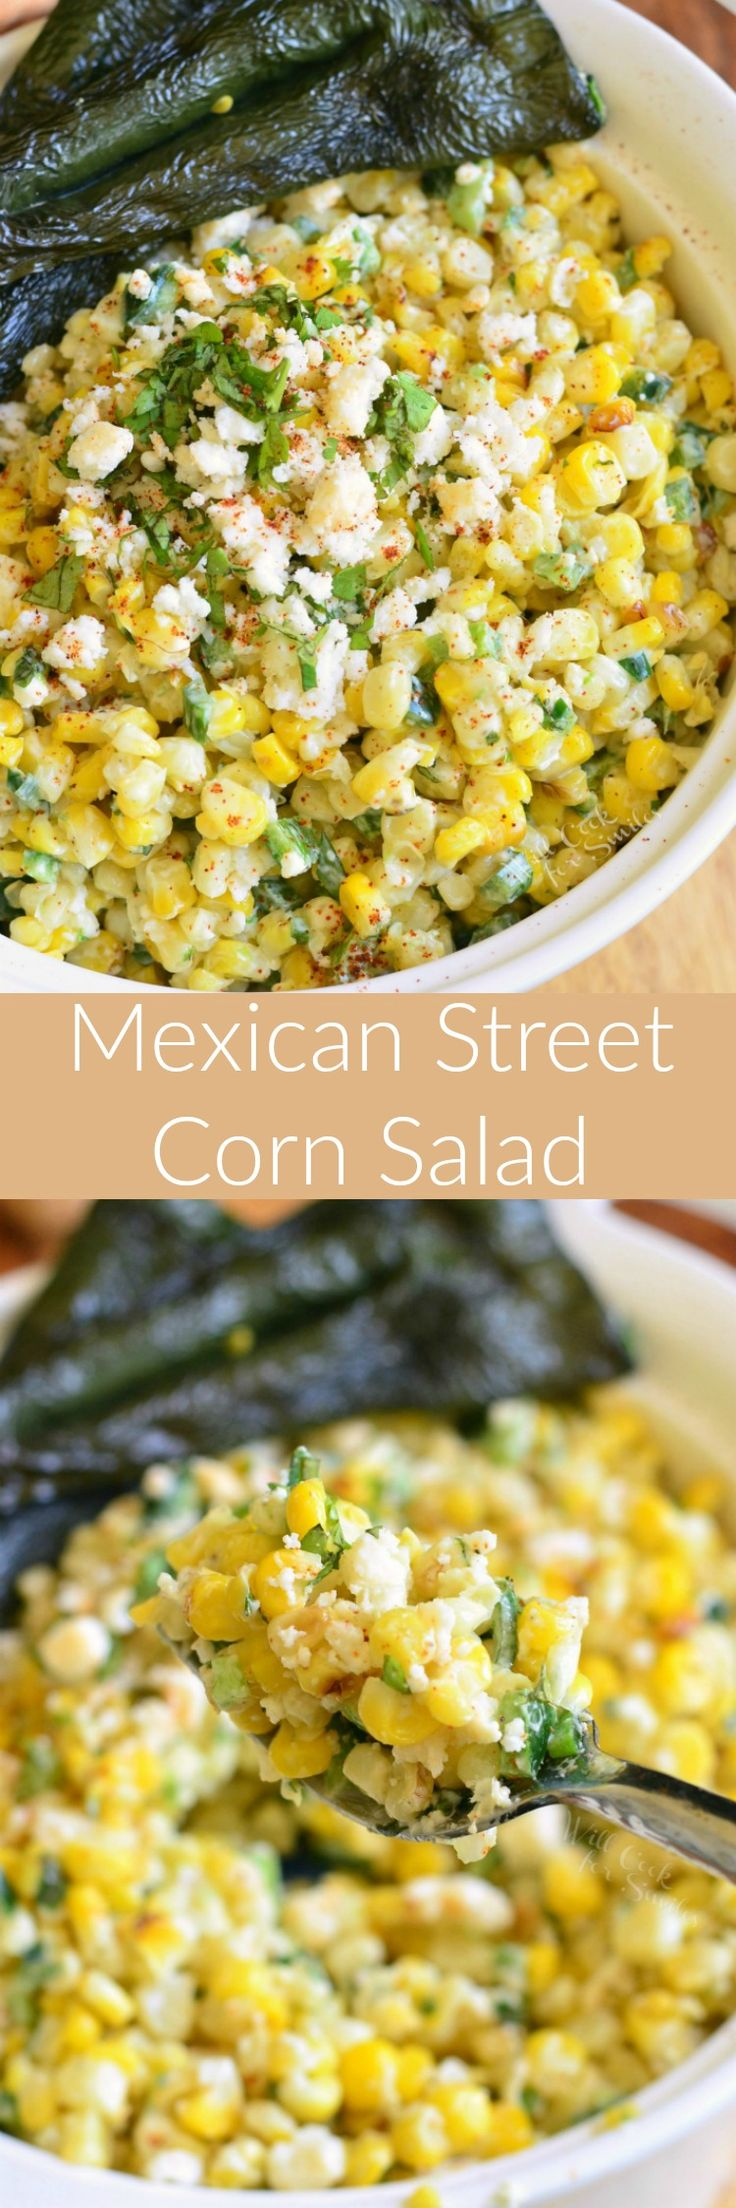 Mexican Street Corn Salad. This delicious Mexican Street Corn Salad is made with grilled corn, grilled poblano peppers, queso fresco, fresh herbs, and more.